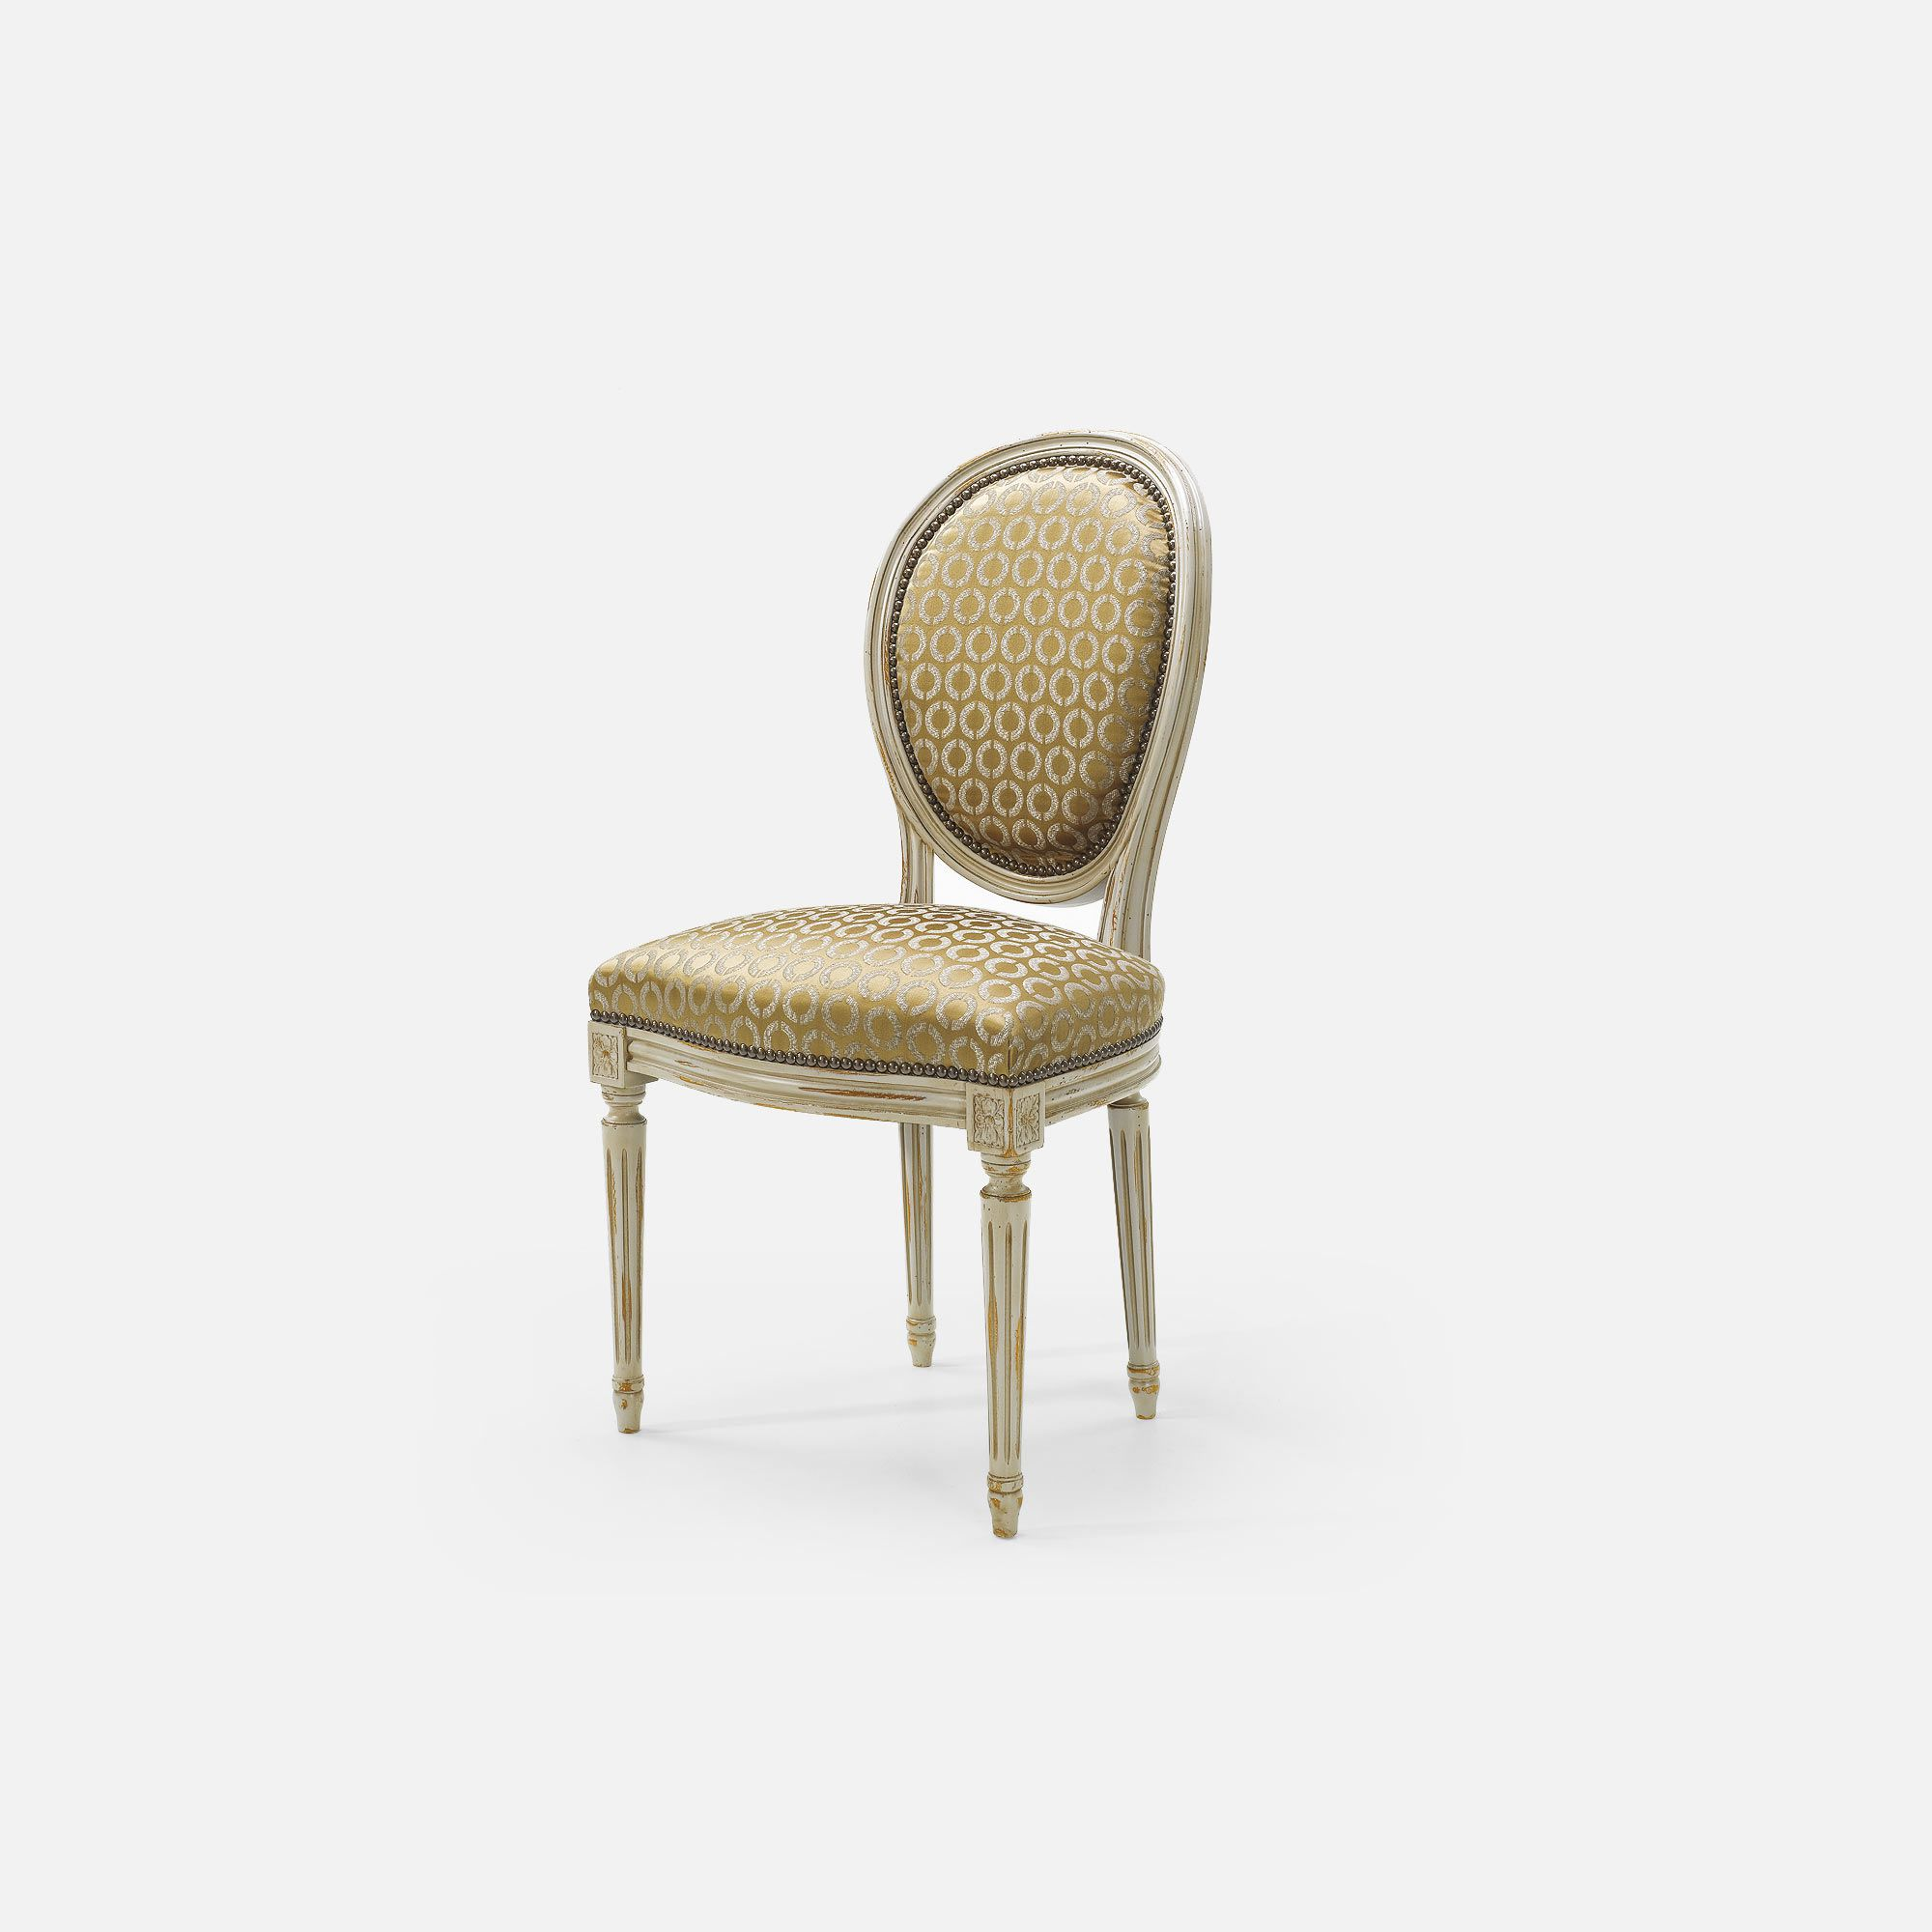 Medallion chair for hotel restaurant bar louis xvi for Chaise louis xvi